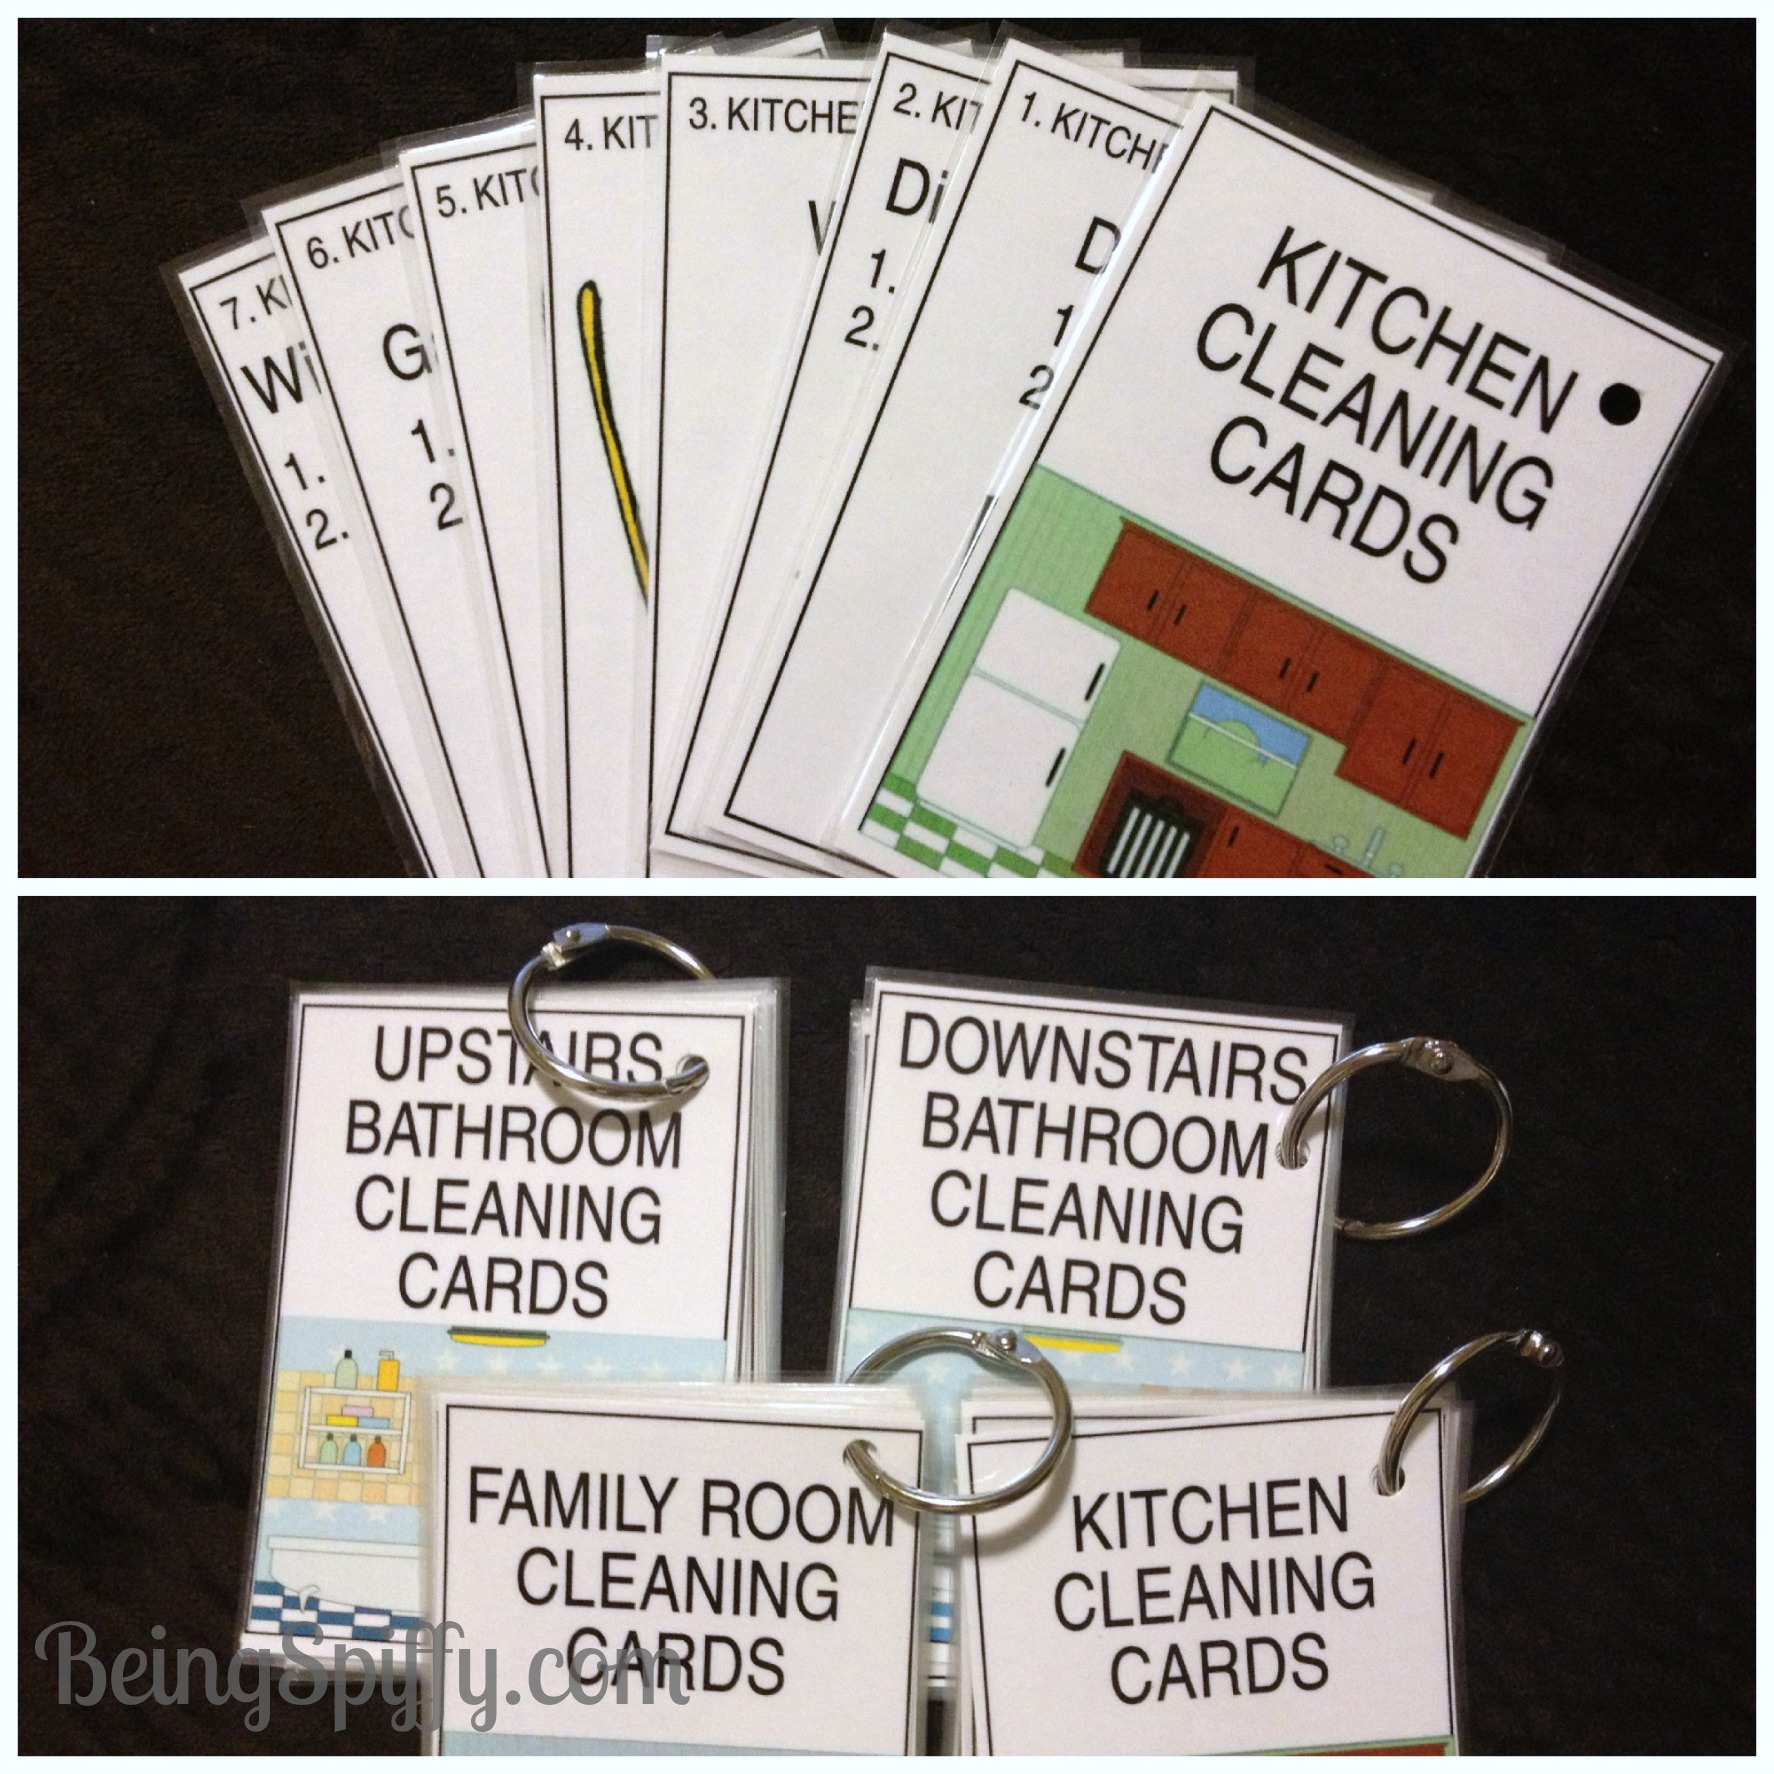 kids_cleaning_cards_kitchen_rings.jpg